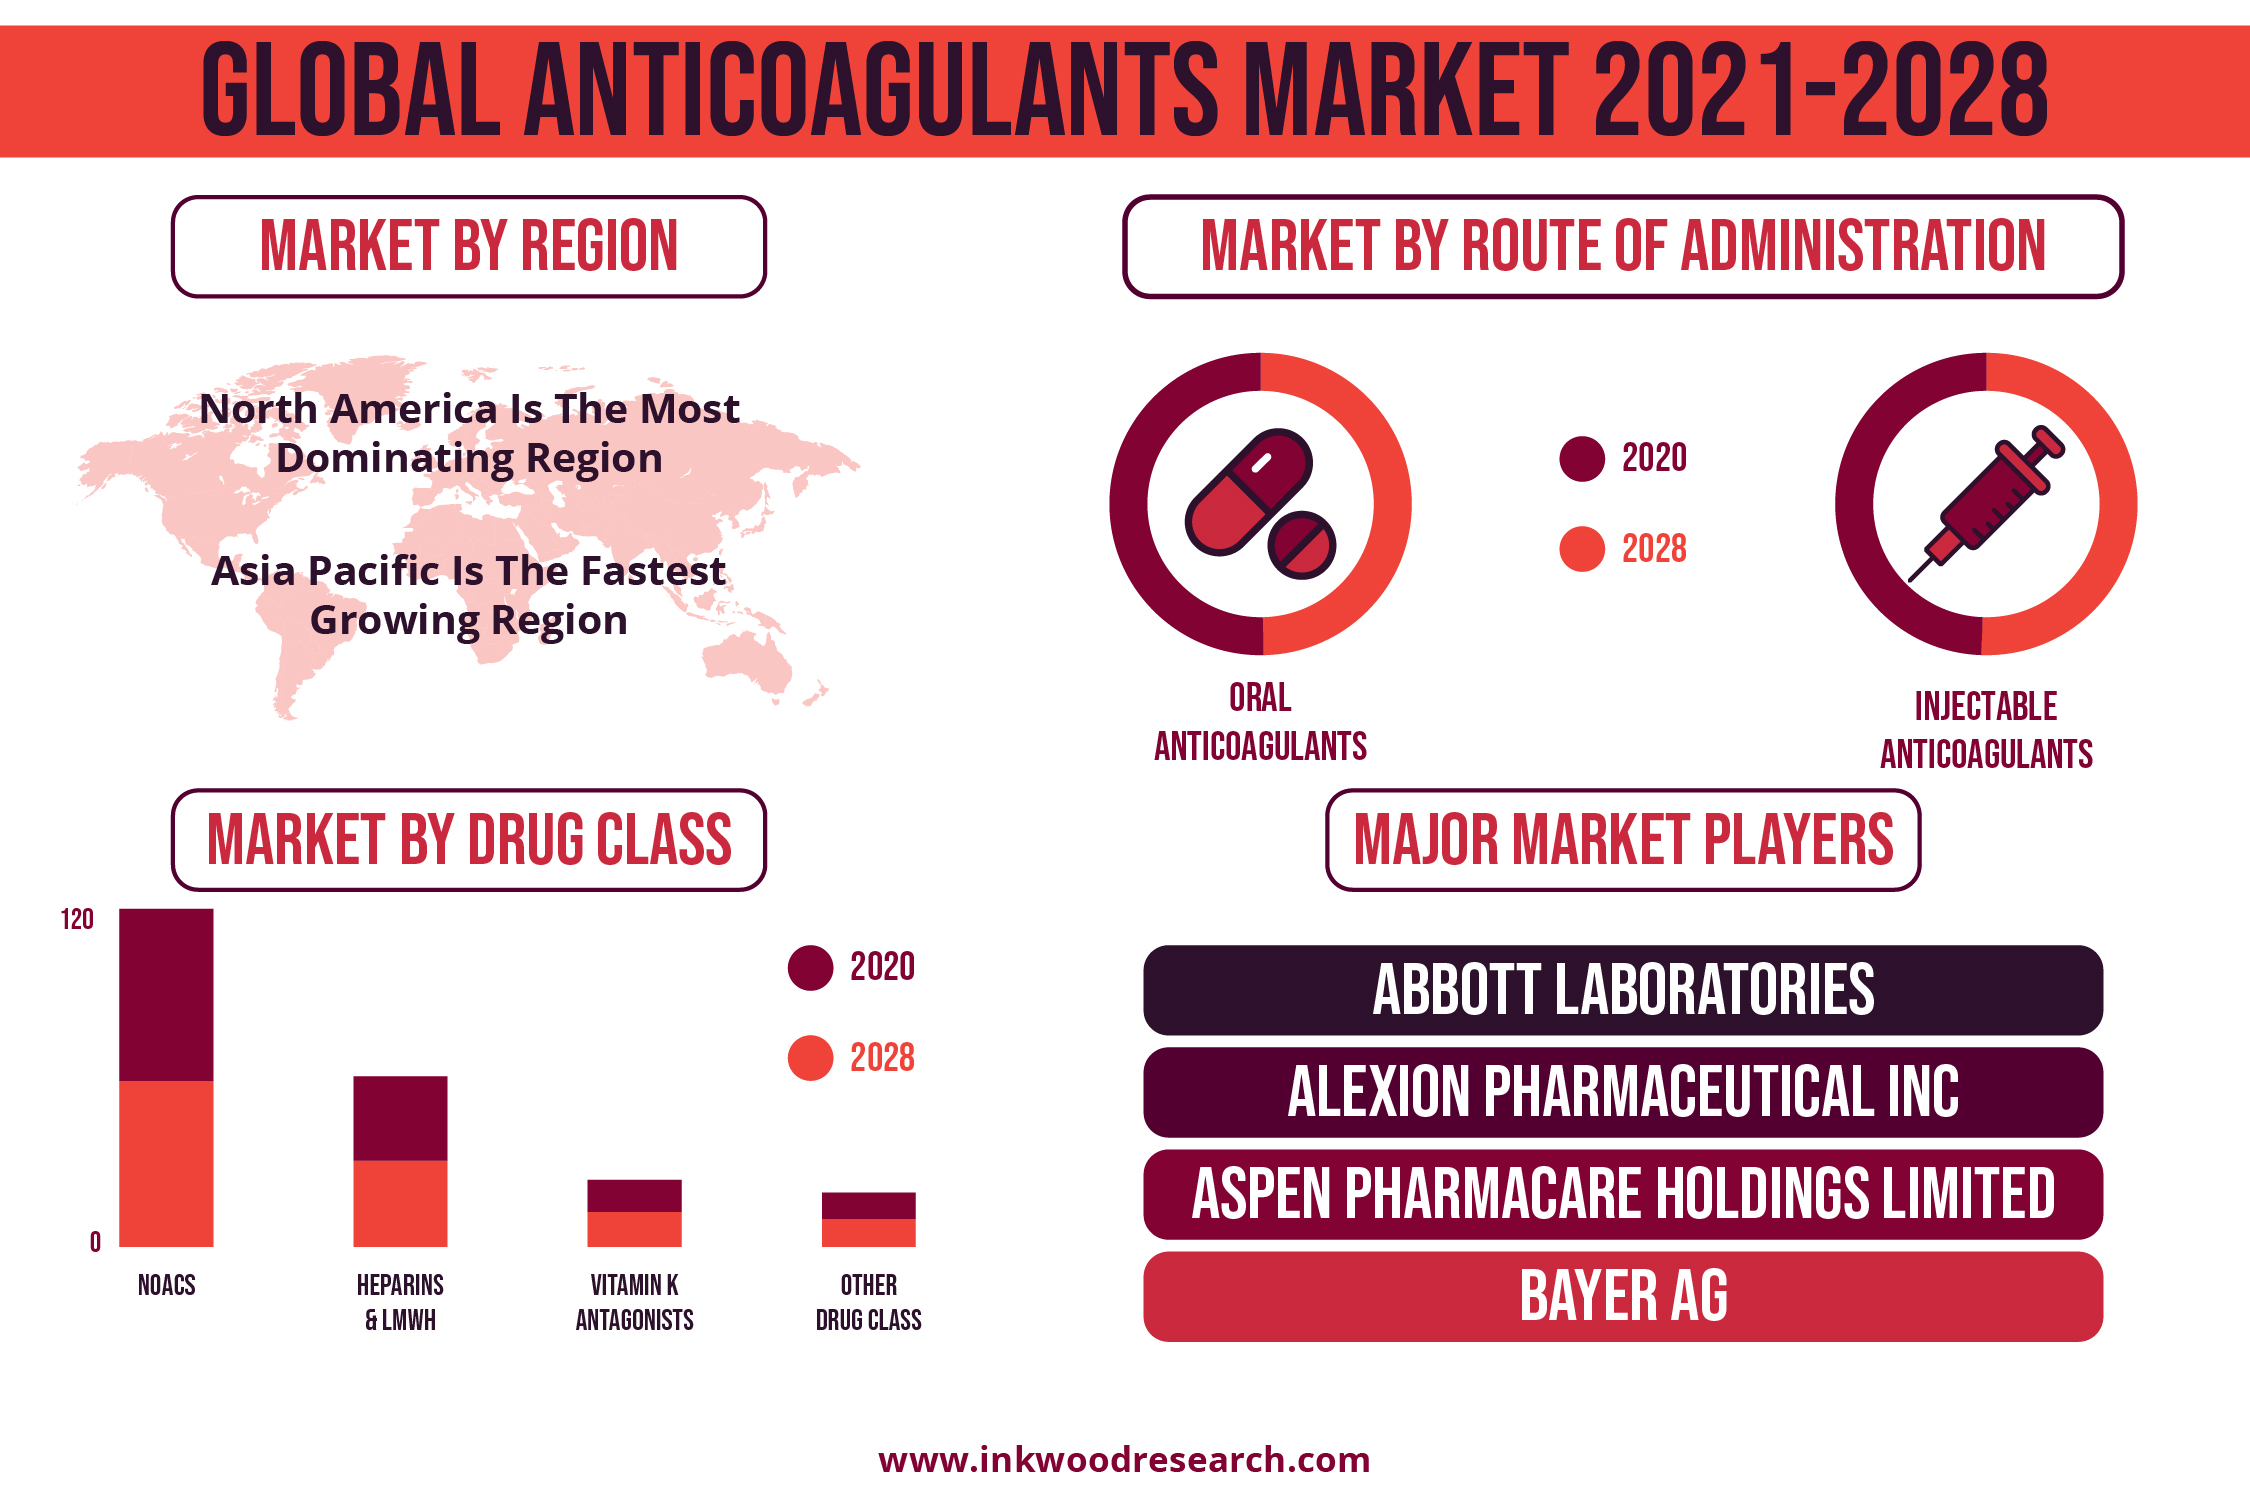 Increasing Approval of NOACs to Push the presence of the Anticoagulants Market Worldwide 14